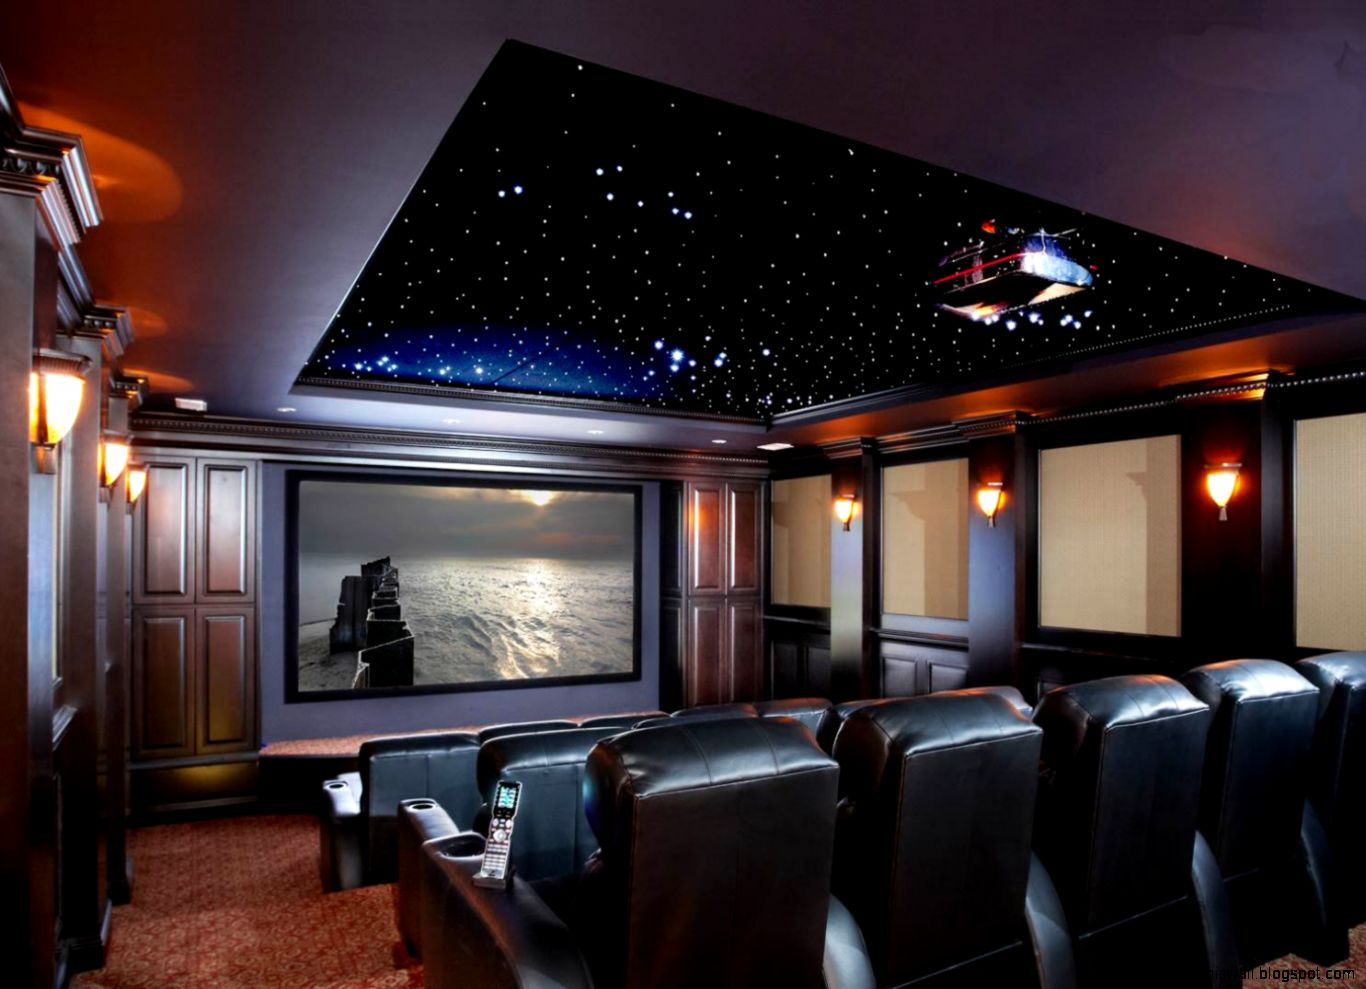 Home theater design magazine this wallpapers Home theater architecture